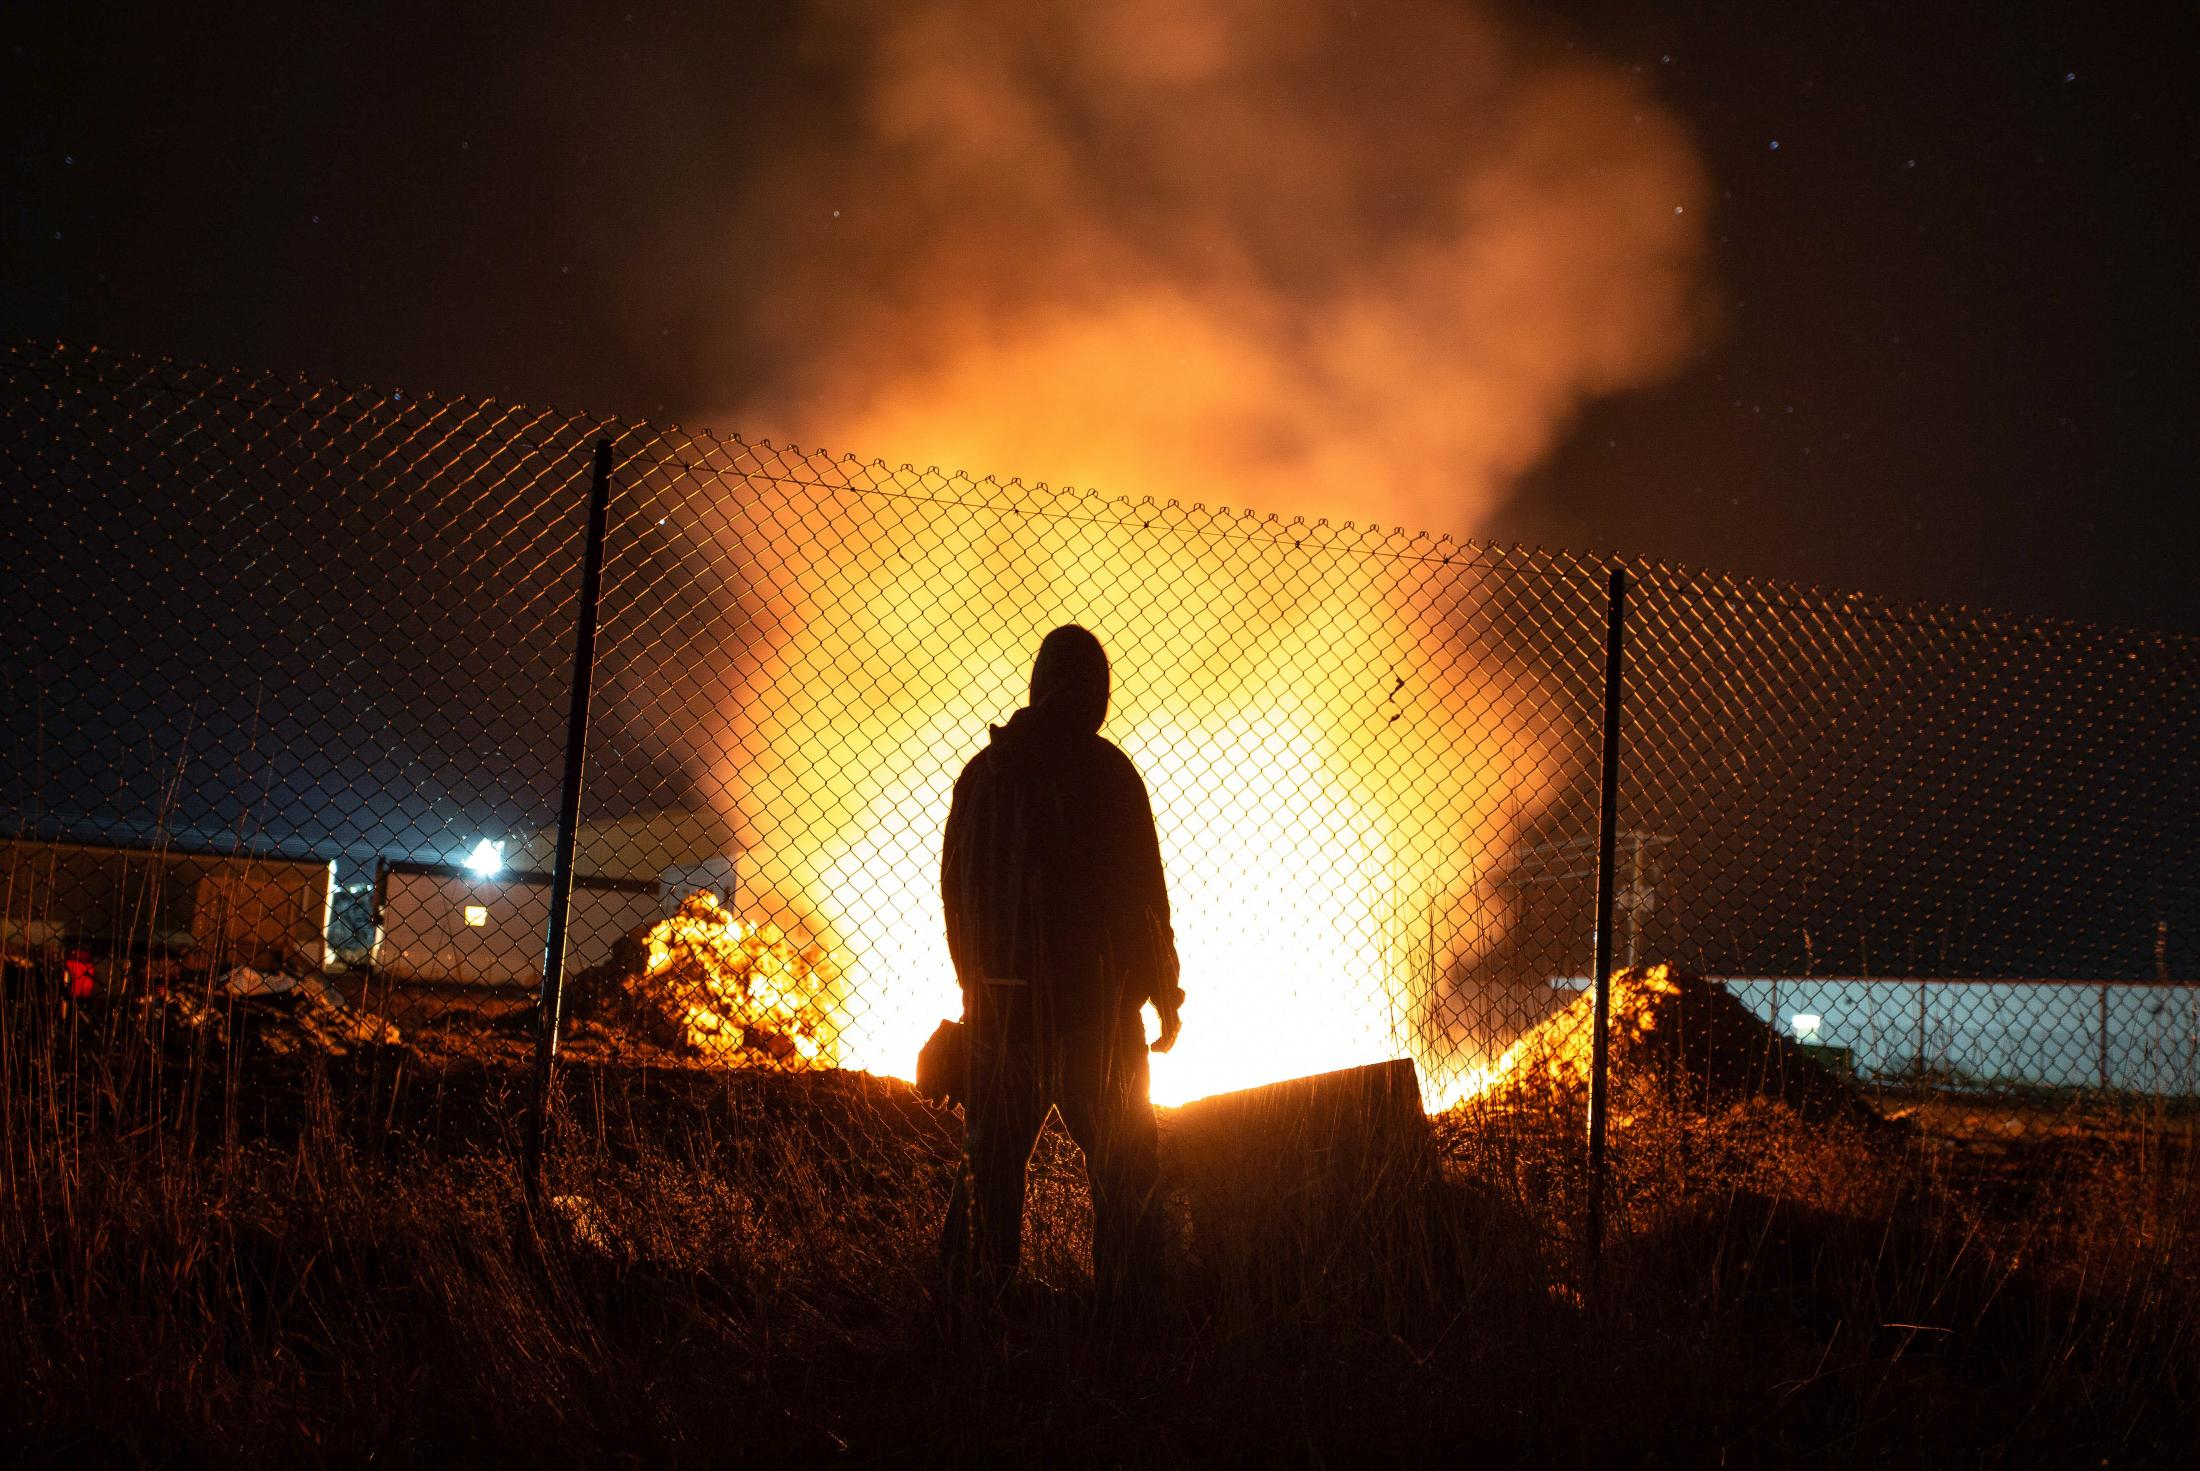 """4/17/15- North Dakota - A resident looks at a flame started by an oil company; he grows frustrated as the smoke from the burning frac bags hits his house. Many locals don't want the oil fields in North Dakota. Nicknames for workers like """"Oil Field Trash"""" has been used to describe the outsiders coming in."""